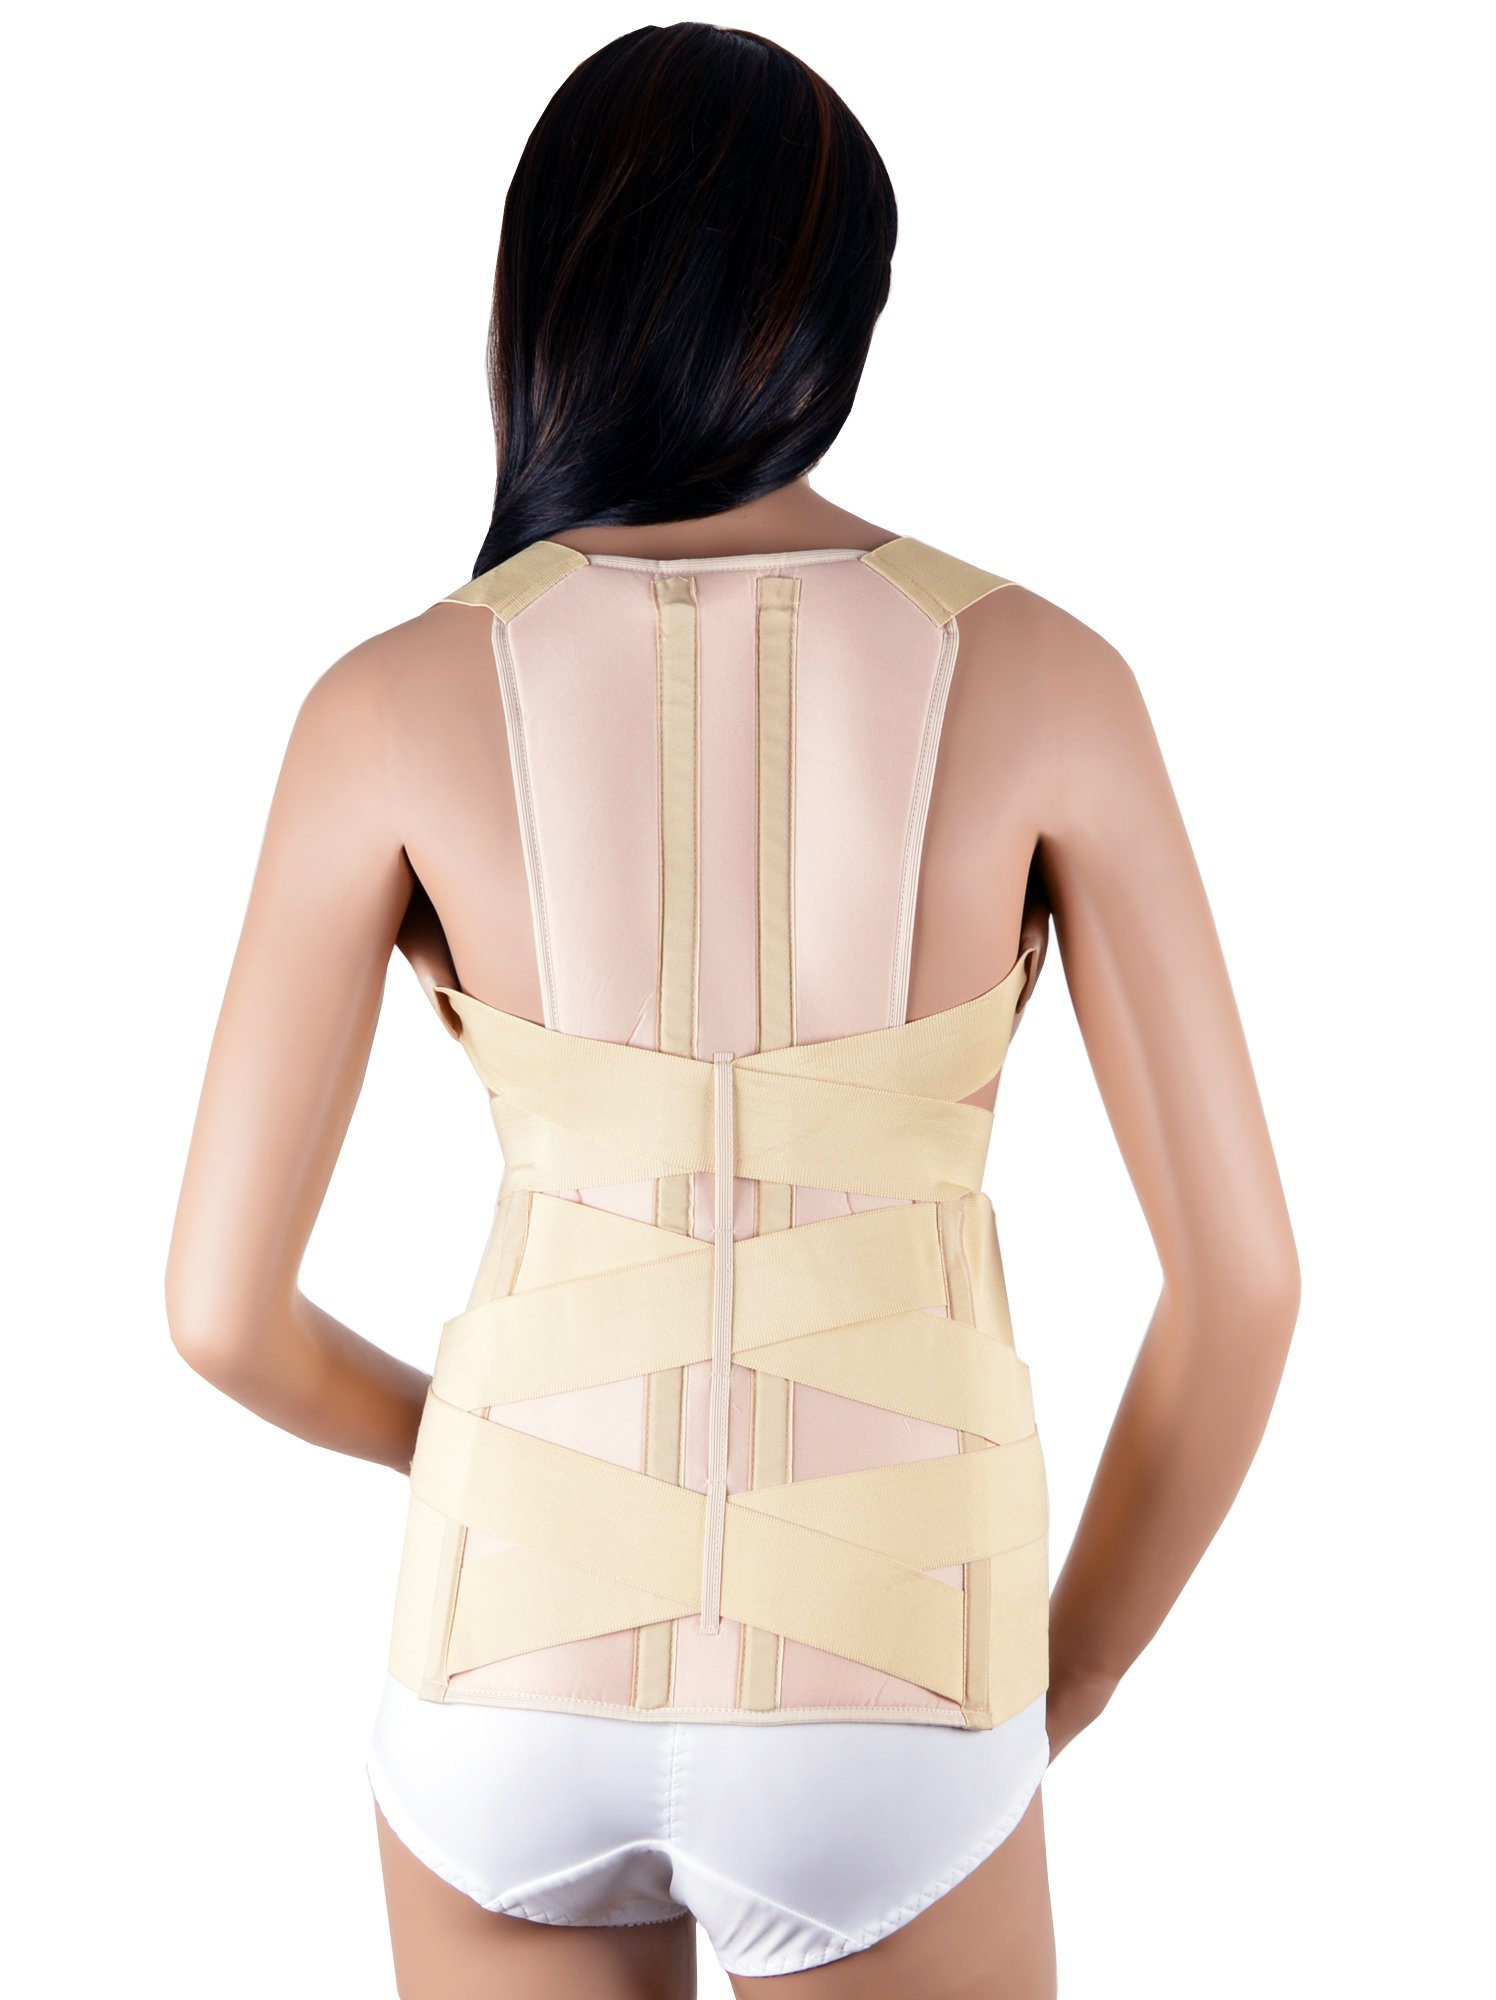 ASSISTICA® Medical Scoliosis Support Brace, Firm Posture Corrector with 2 Back Metal Splints (X-Large)